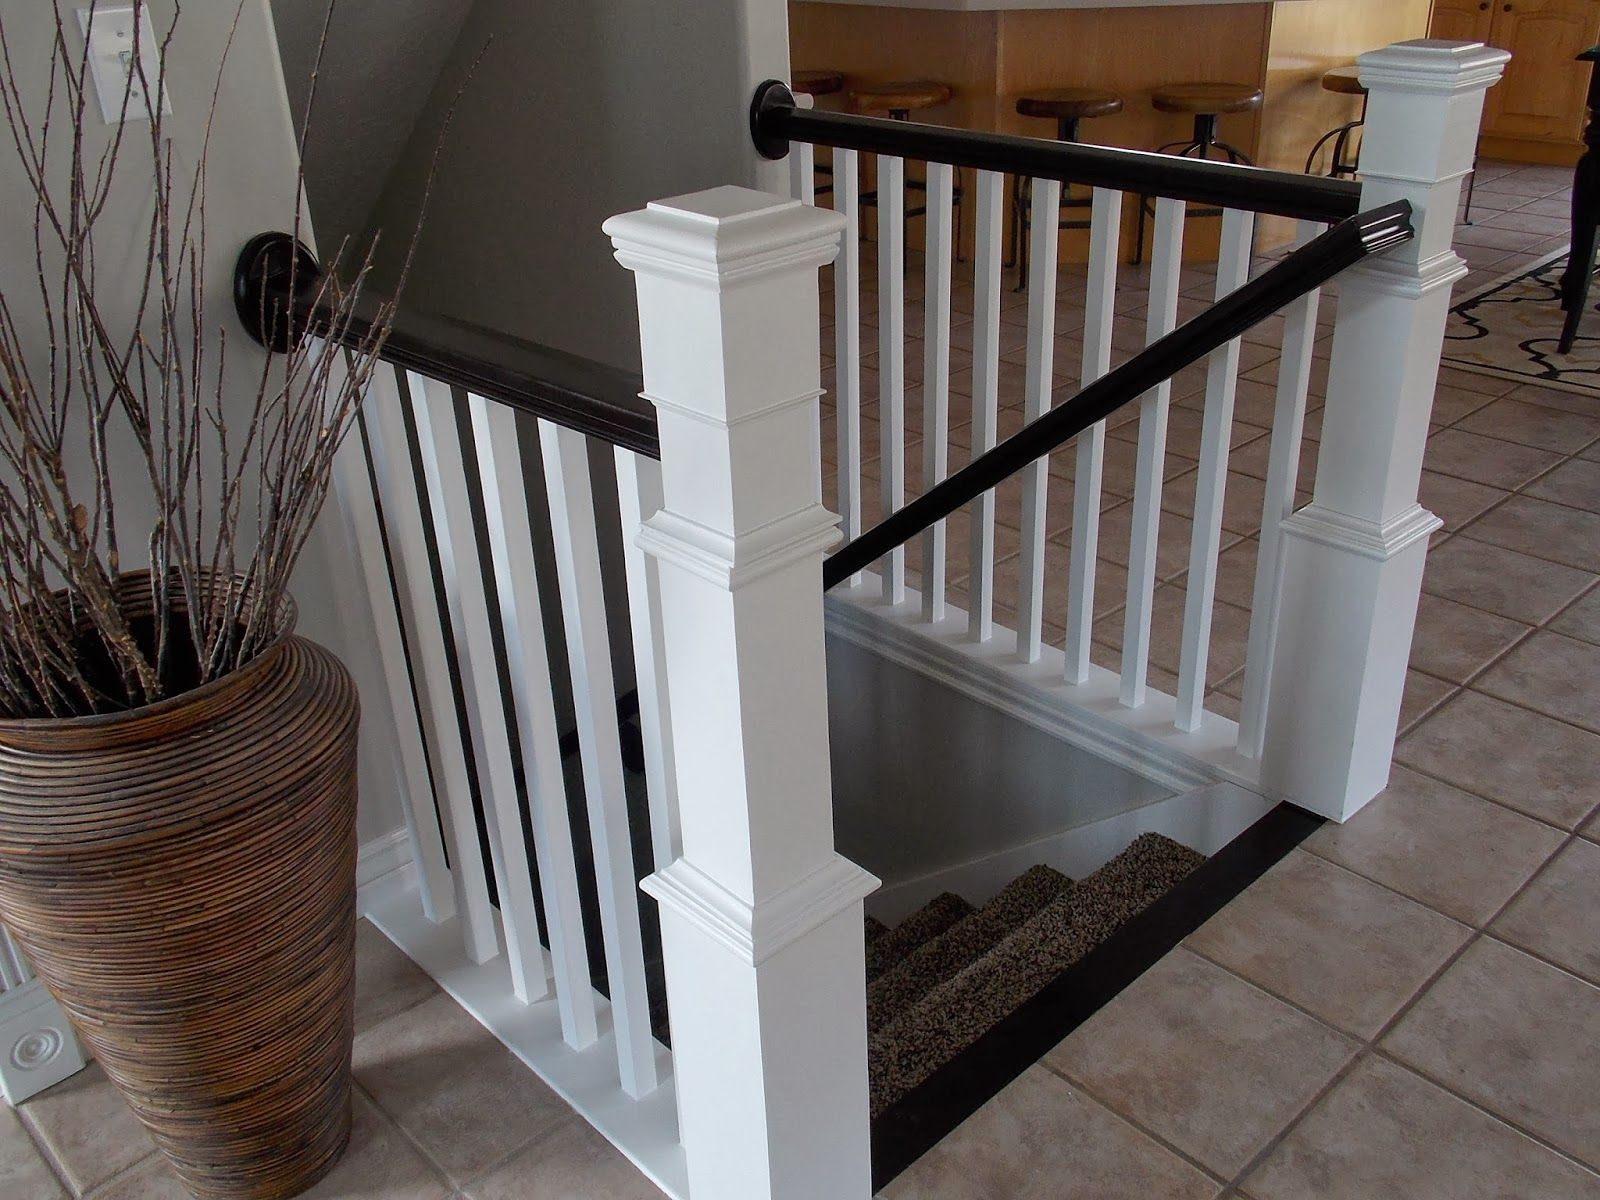 Best Diy Stair Banister With New Newel Post And Spindles Tda Decorating And Design Featured On 640 x 480